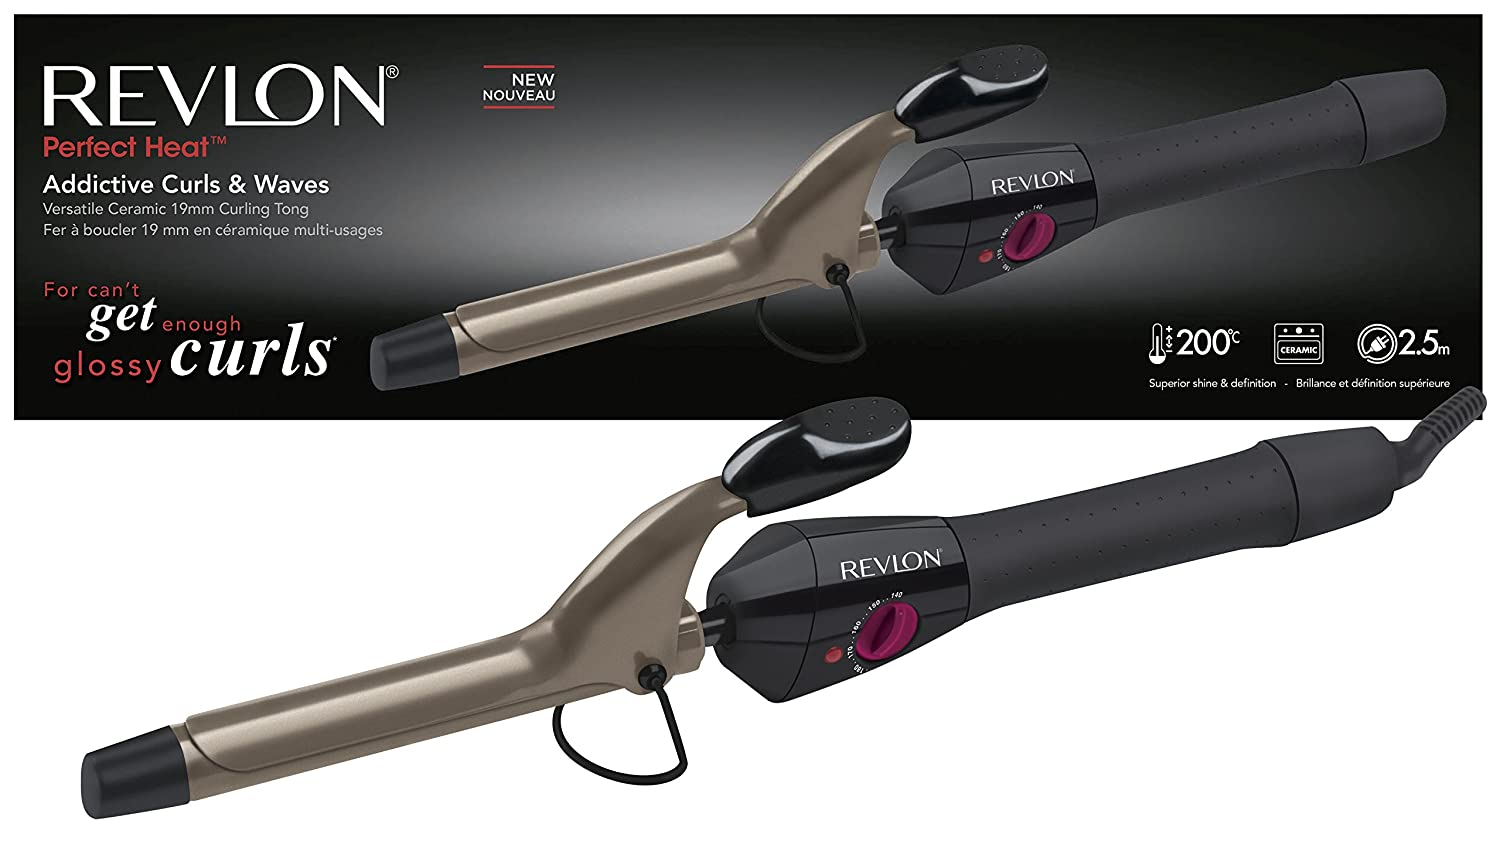 Revlon Addictive Curls and Waves curling tong Helen of Troy RVIR1409UK